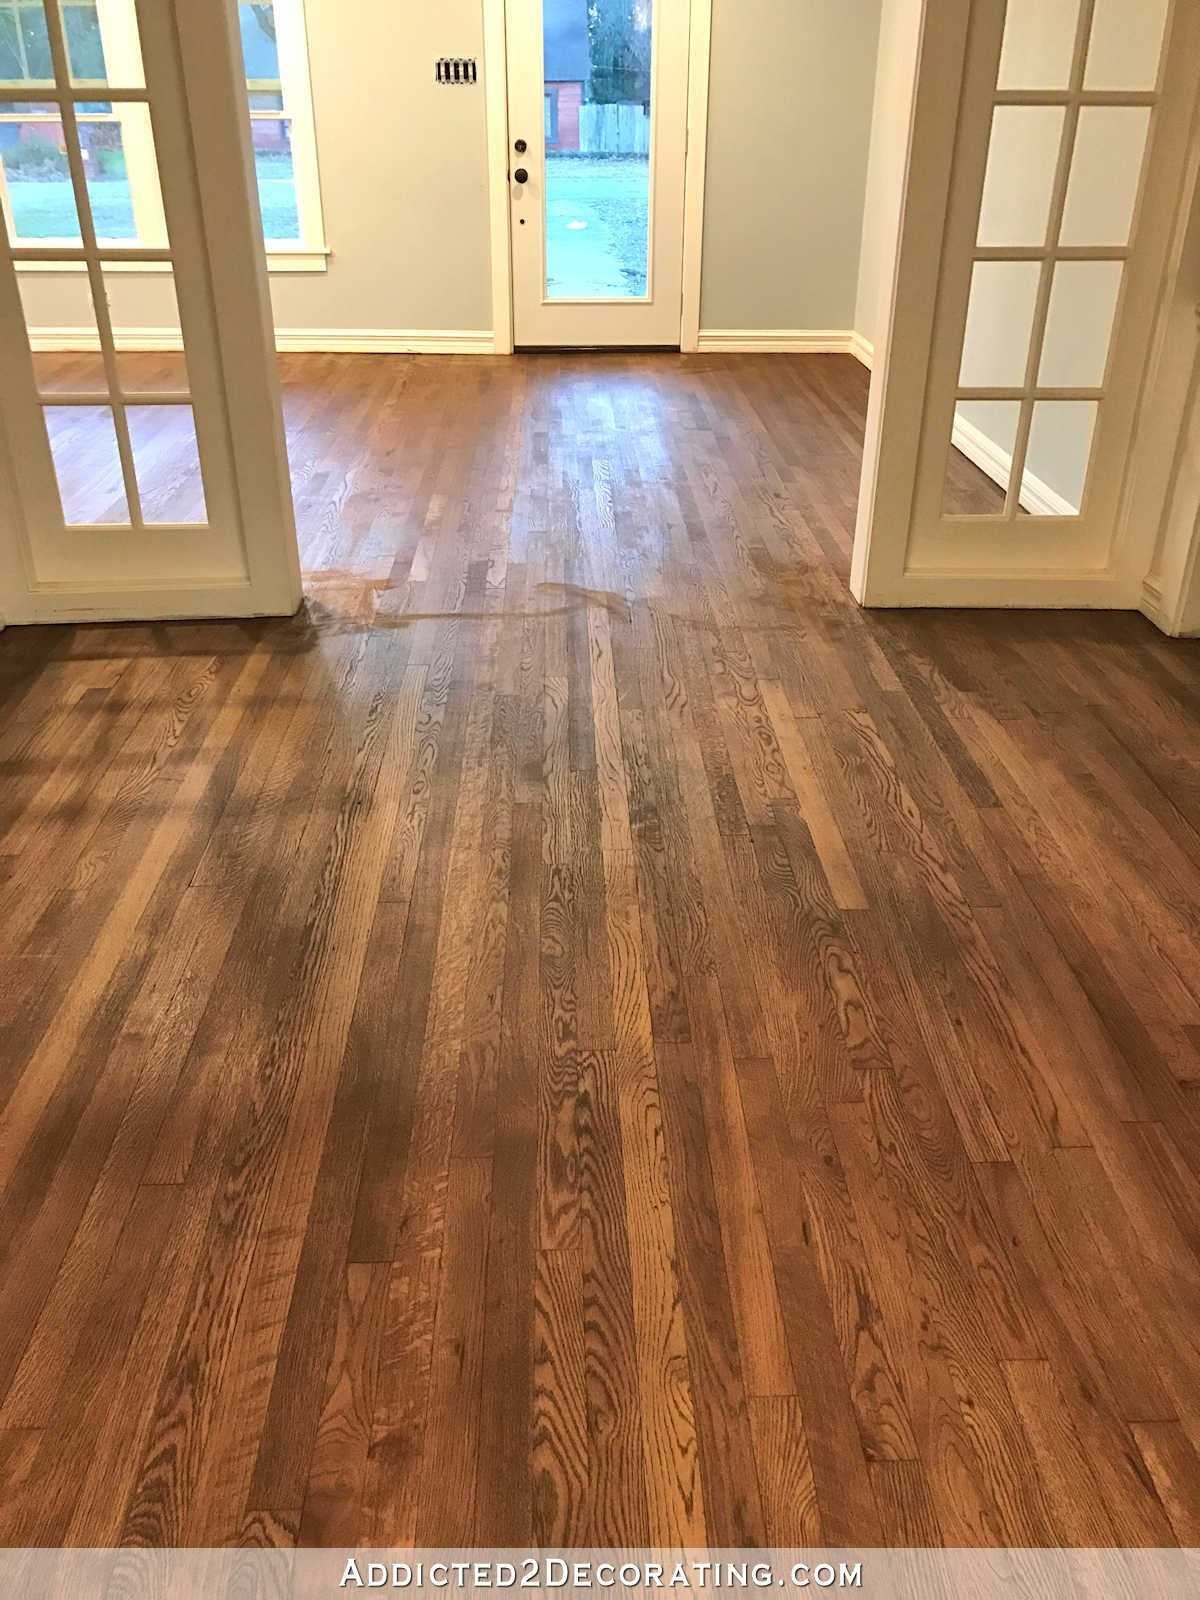 how much does restaining hardwood floors cost of hardwood floor refinishing products spot refinishing hardwood floors for hardwood floor refinishing products spot refinishing hardwood floors podemosleganes